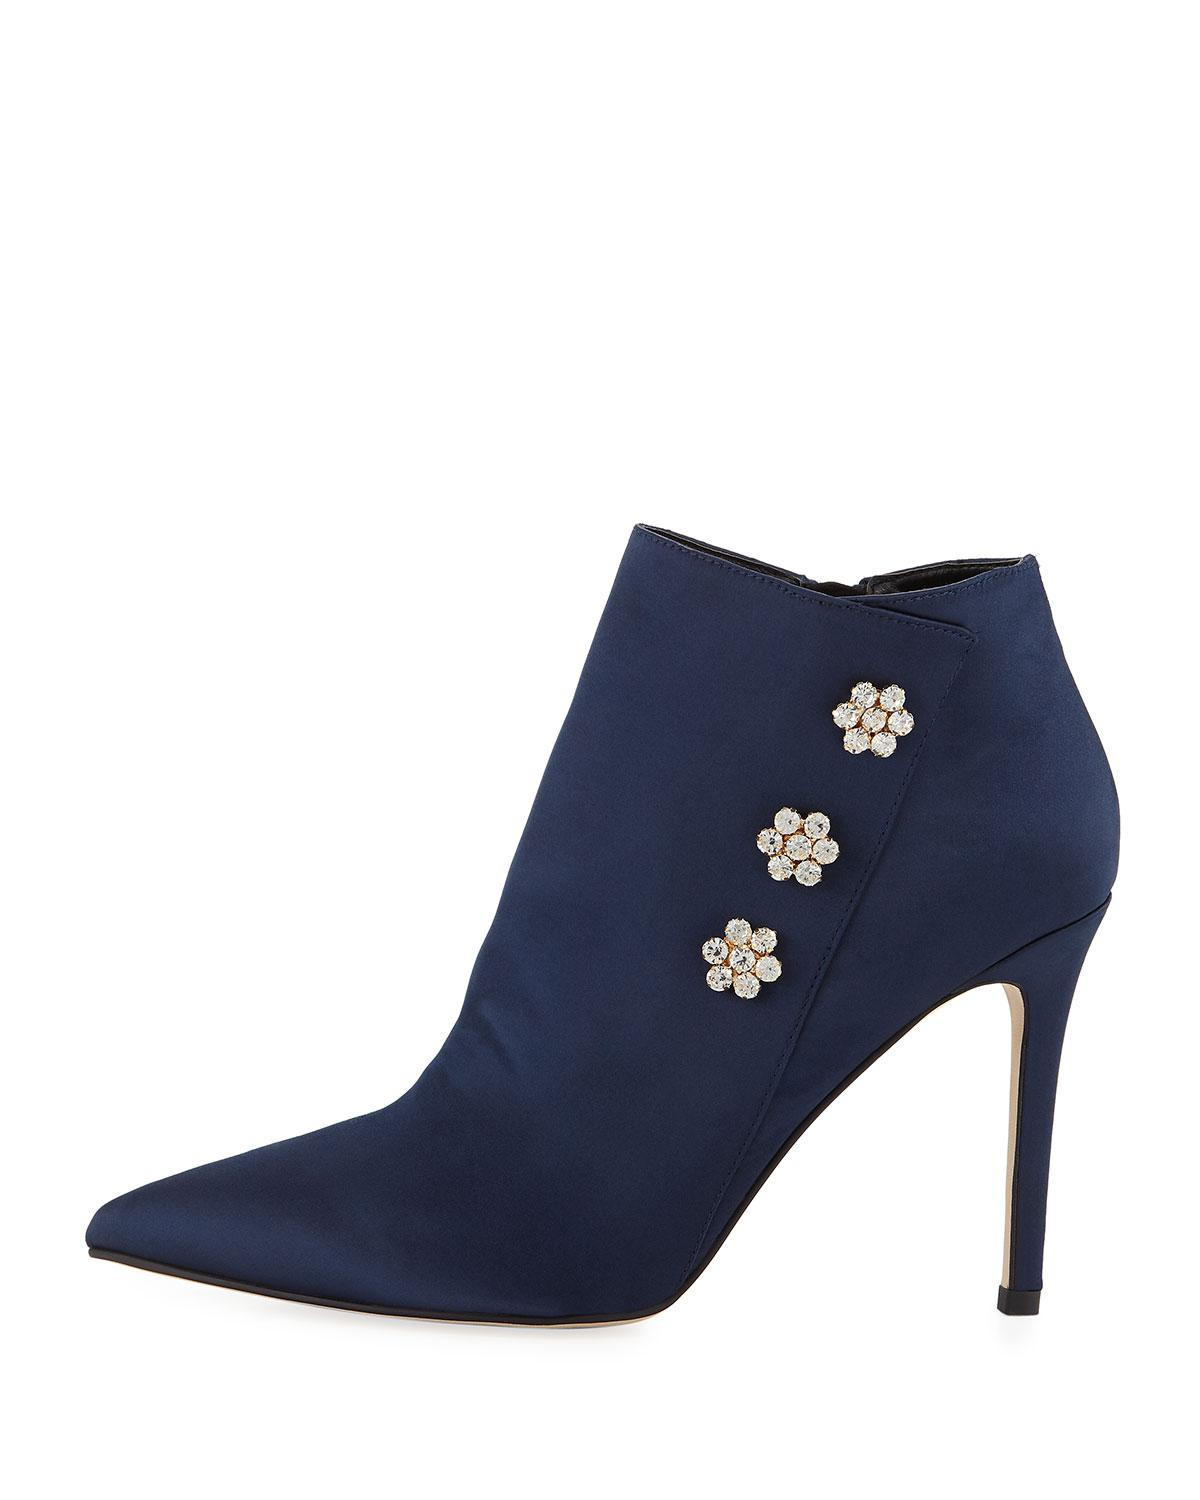 492c1f6c9fba Lyst - Neiman Marcus Sparkle Embellished Satin Booties in Blue